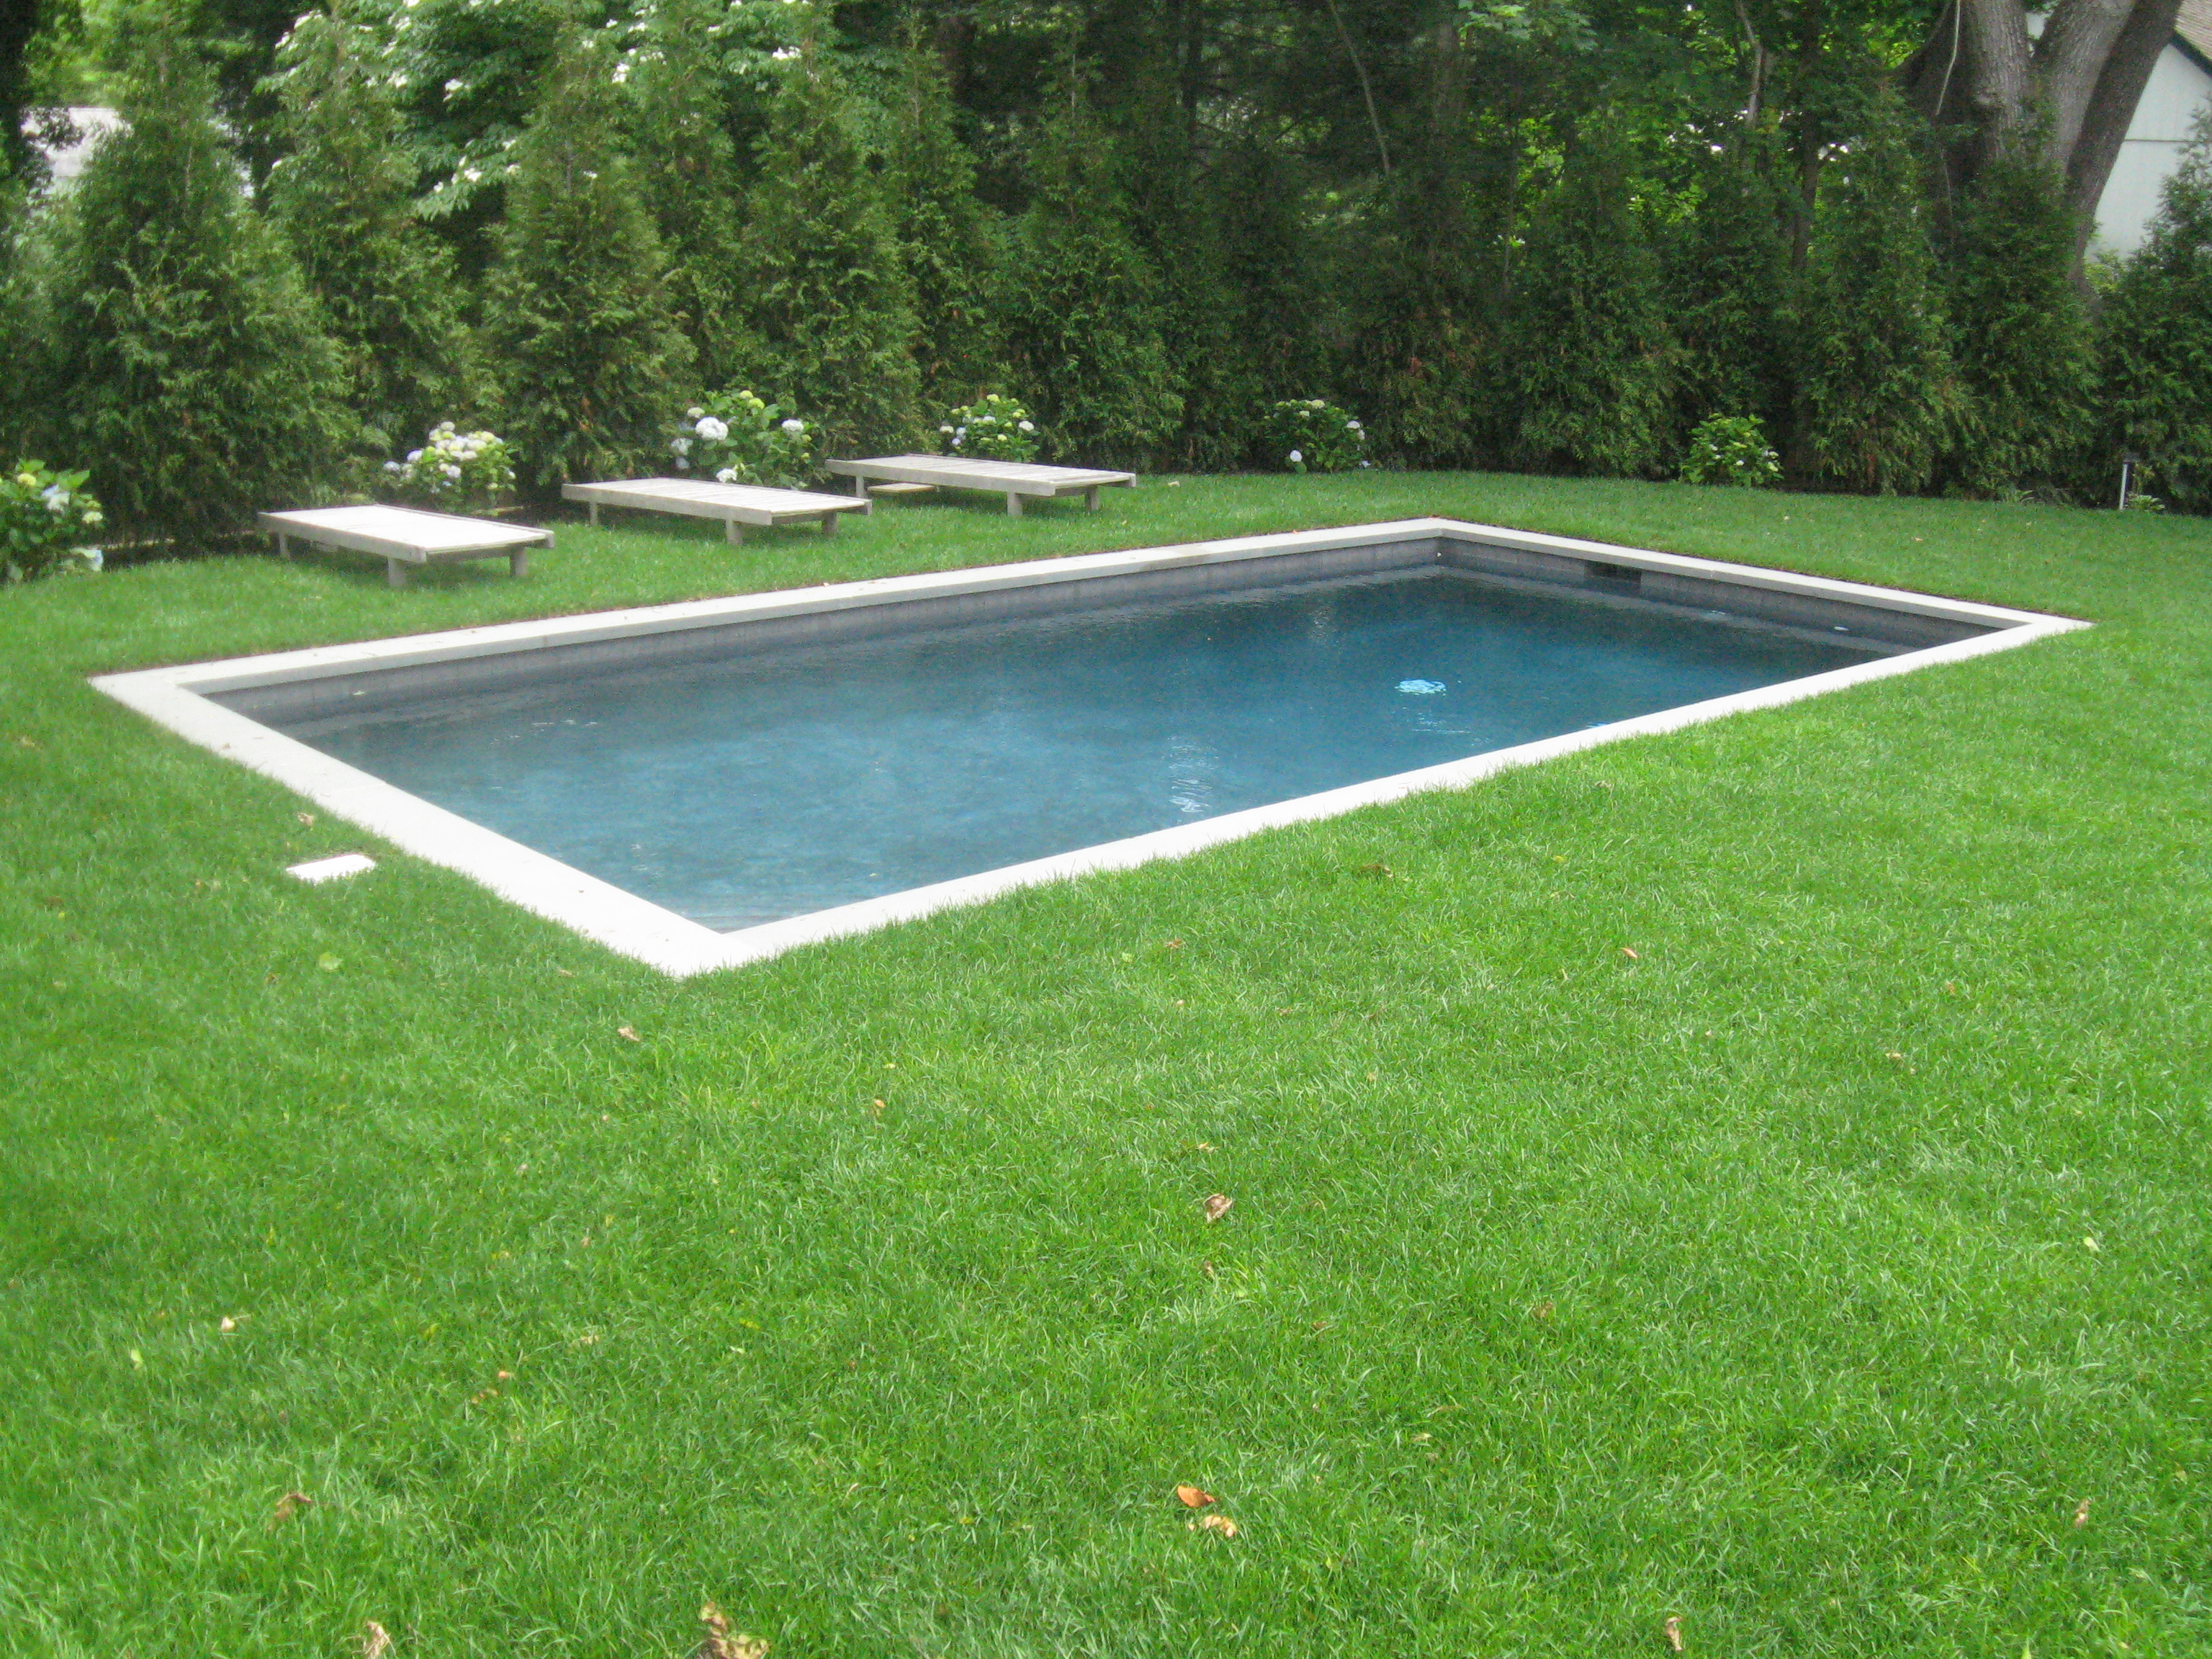 Pool Design Ideas Small Inground Pools Kazdin Pools Spas